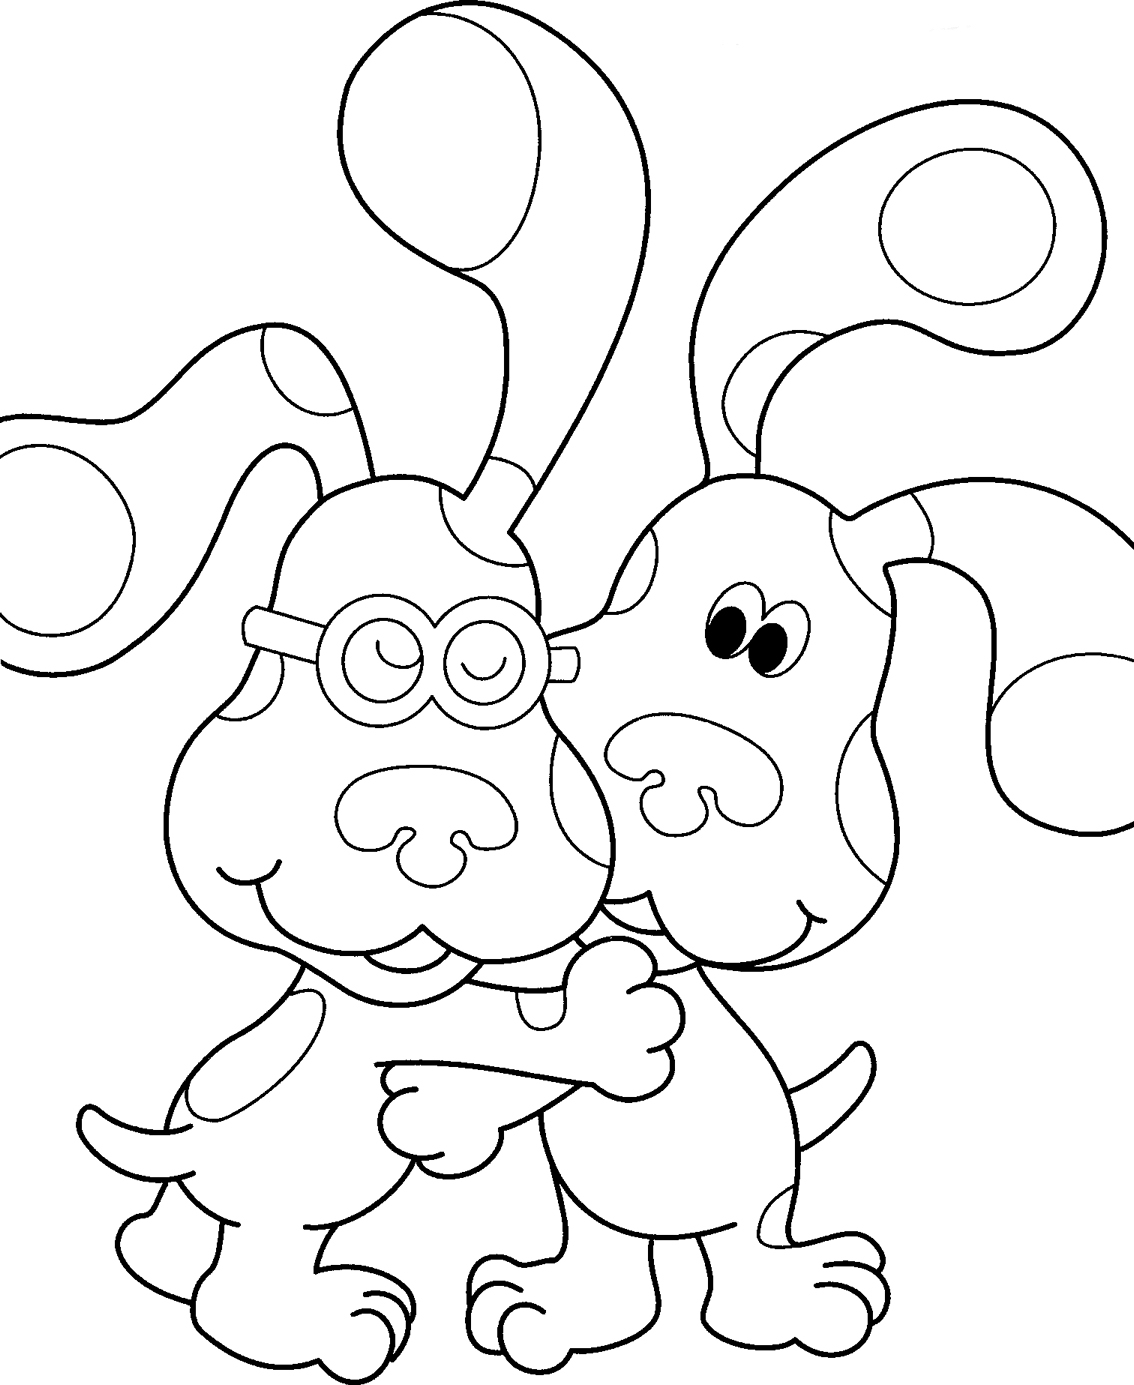 blues clues birthday coloring pages ; blues-clues-coloring-pages-blue-s-page-for-kids